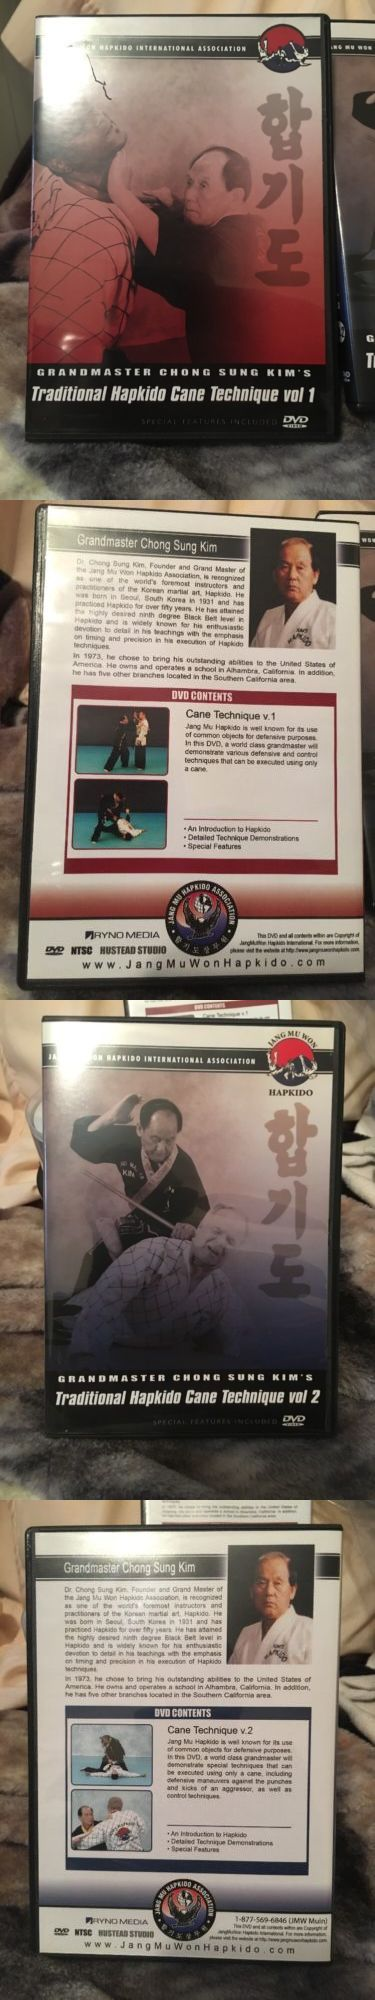 DVDs Videos and Books 73991: Hapkido Cane Self Defense Vol 1 And 2 -> BUY IT NOW ONLY: $70 on eBay!